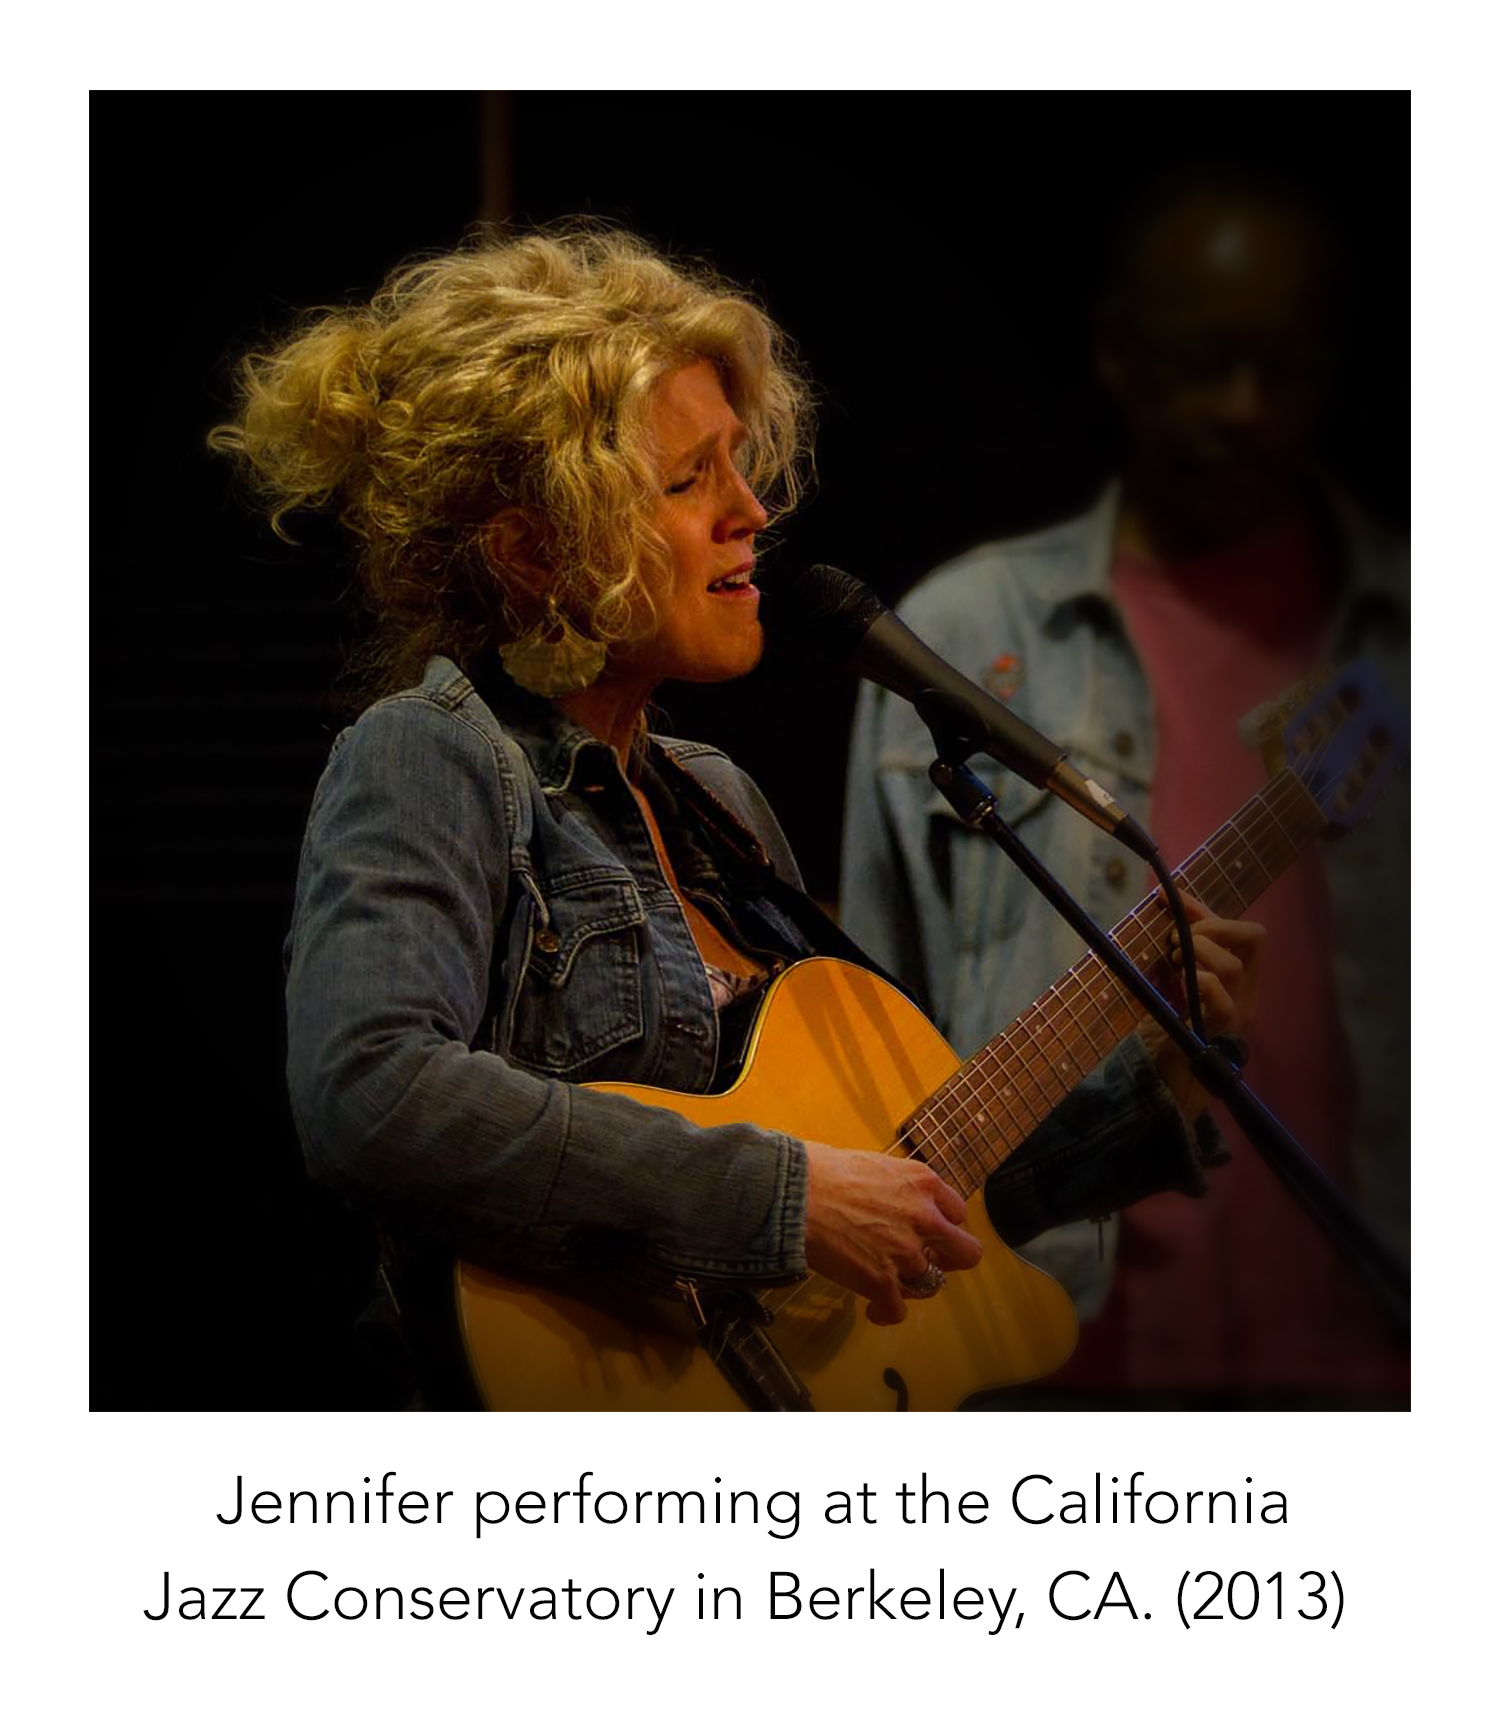 Jennifer Lee live at the California Jazz Conservatory